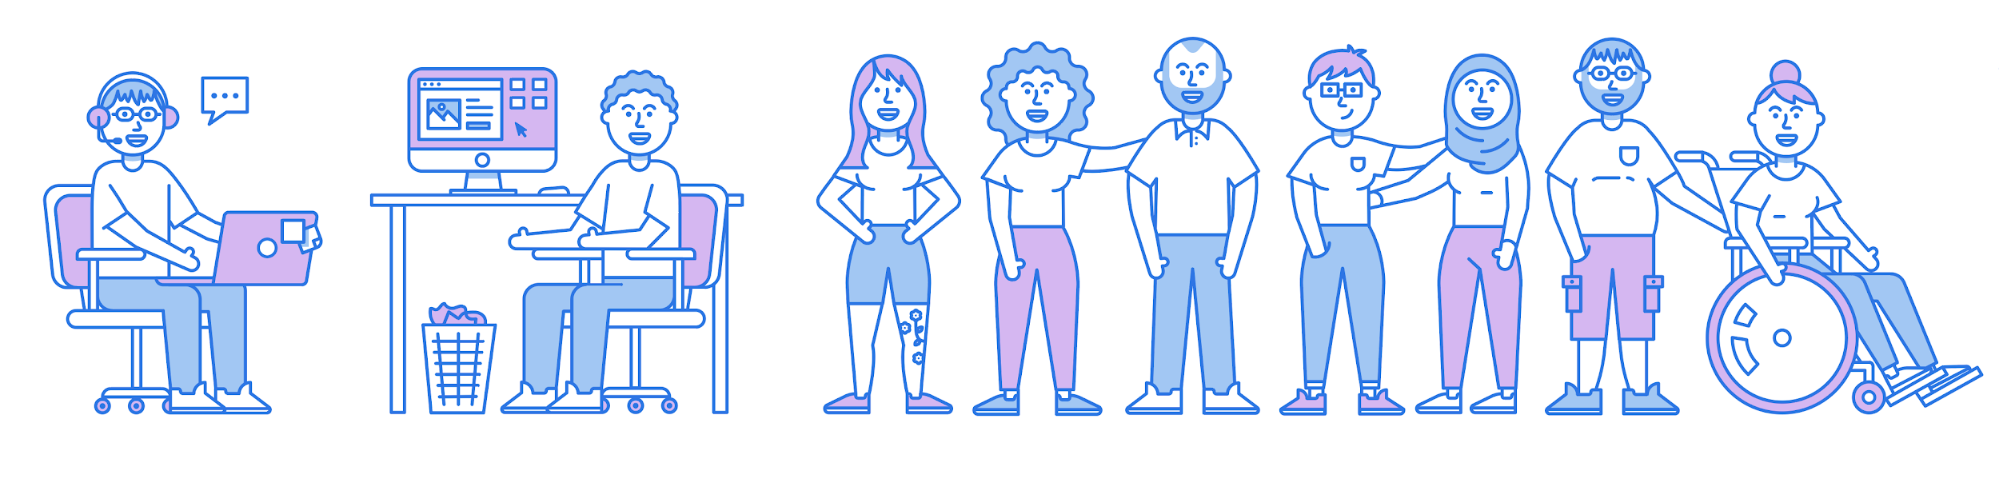 People Illustration Examples